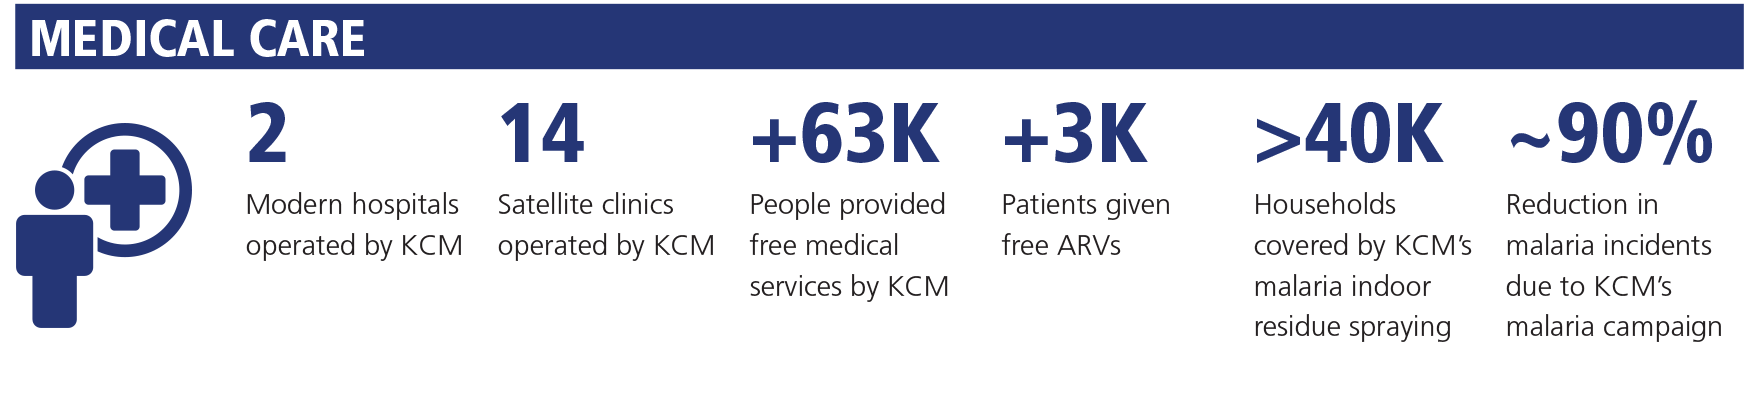 KCM program - Medical care [diagram]